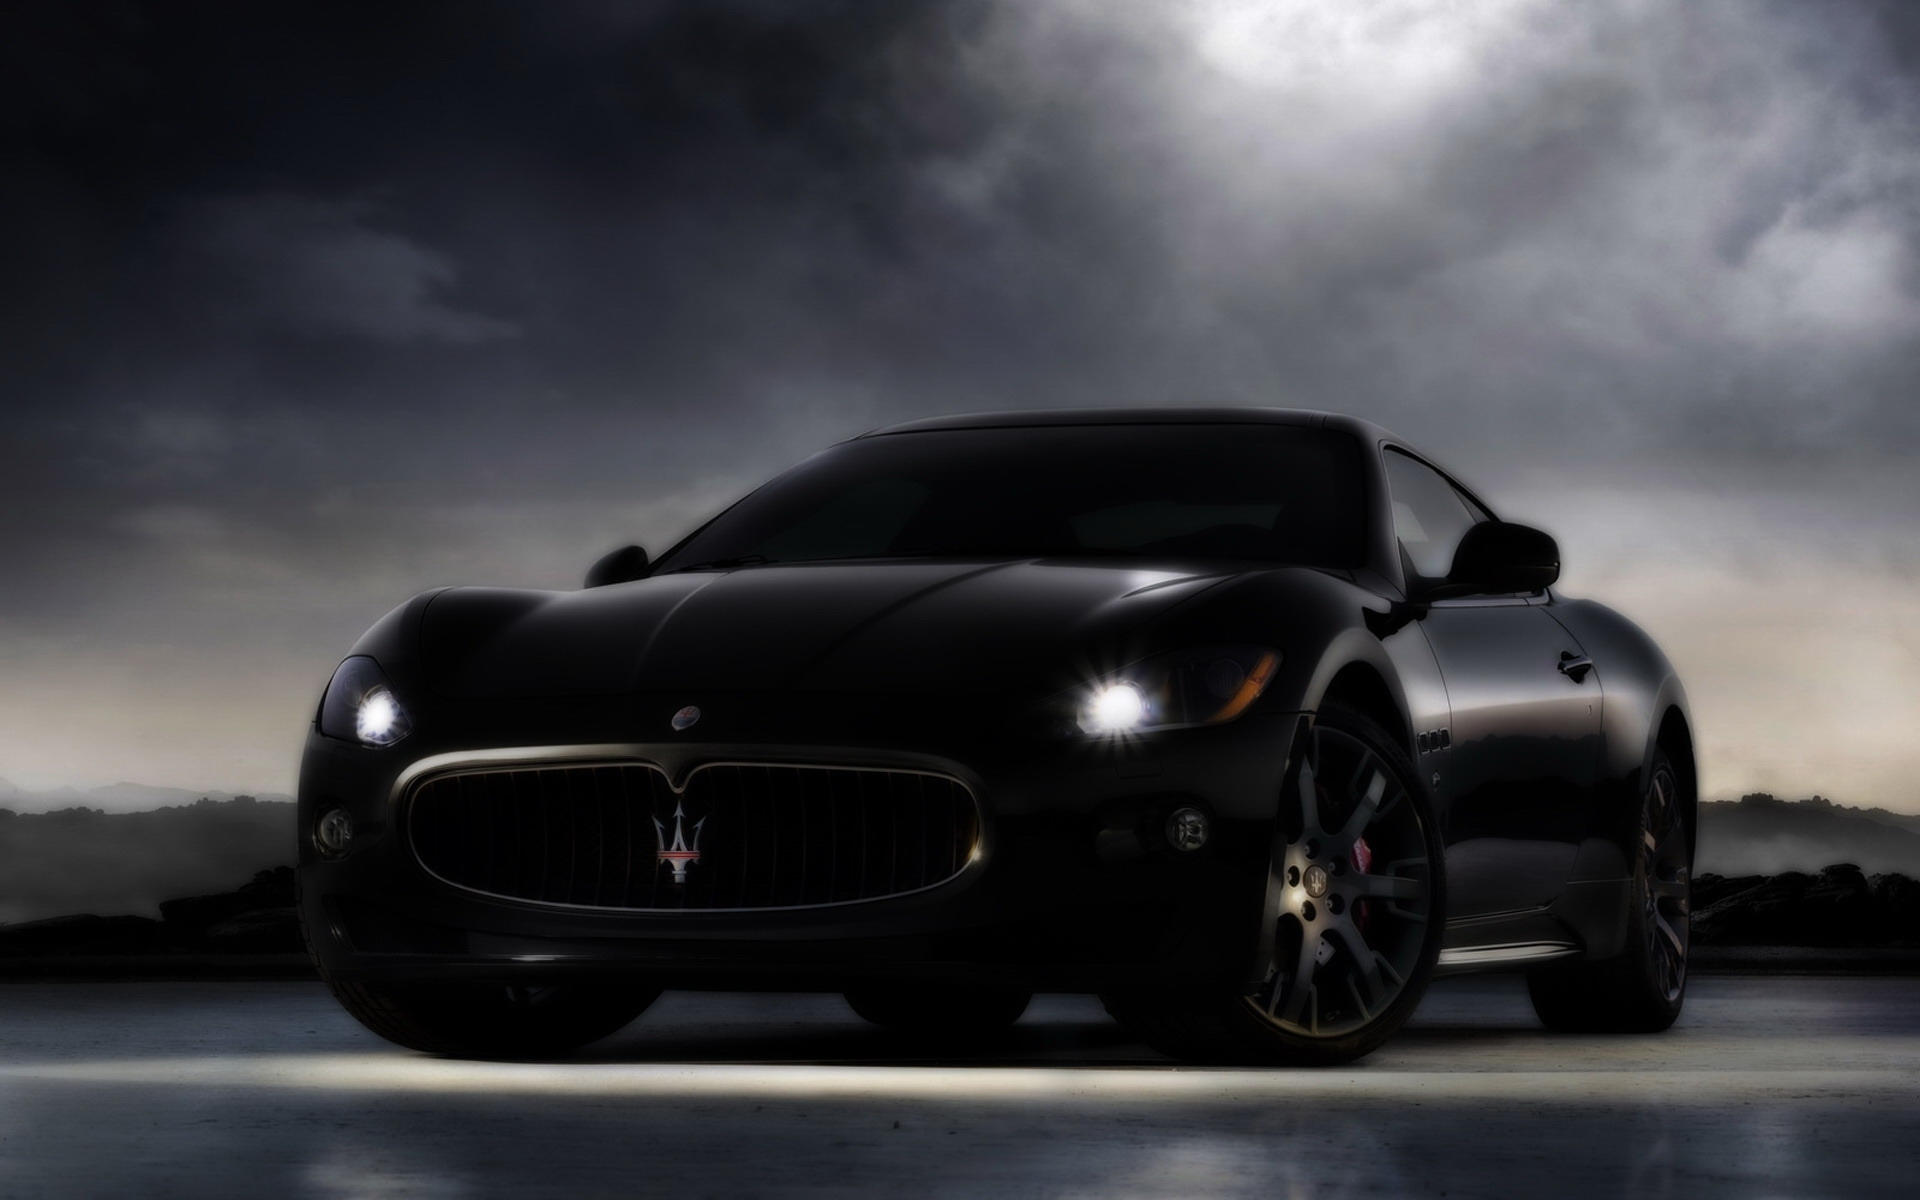 44388 download wallpaper Transport, Auto, Maserati screensavers and pictures for free